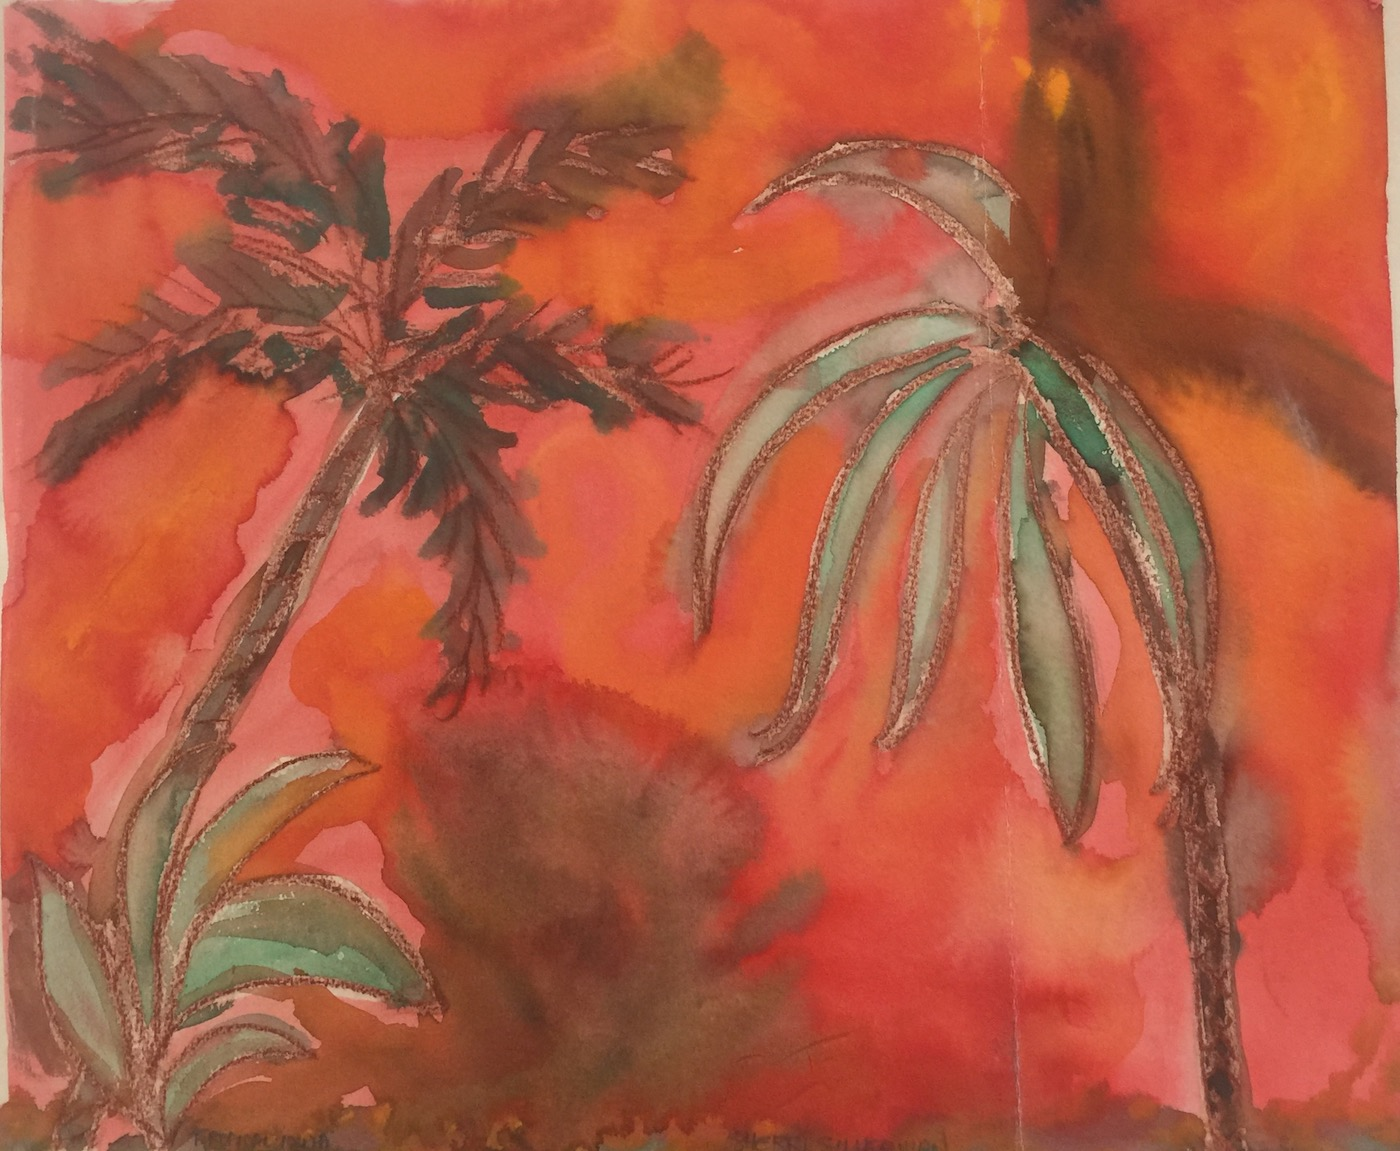 "Tropical Heatwave. Watercolor and pastels on paper. Sherri SIlverman. 1979. 14"" x 17"" image, paper slightly larger."